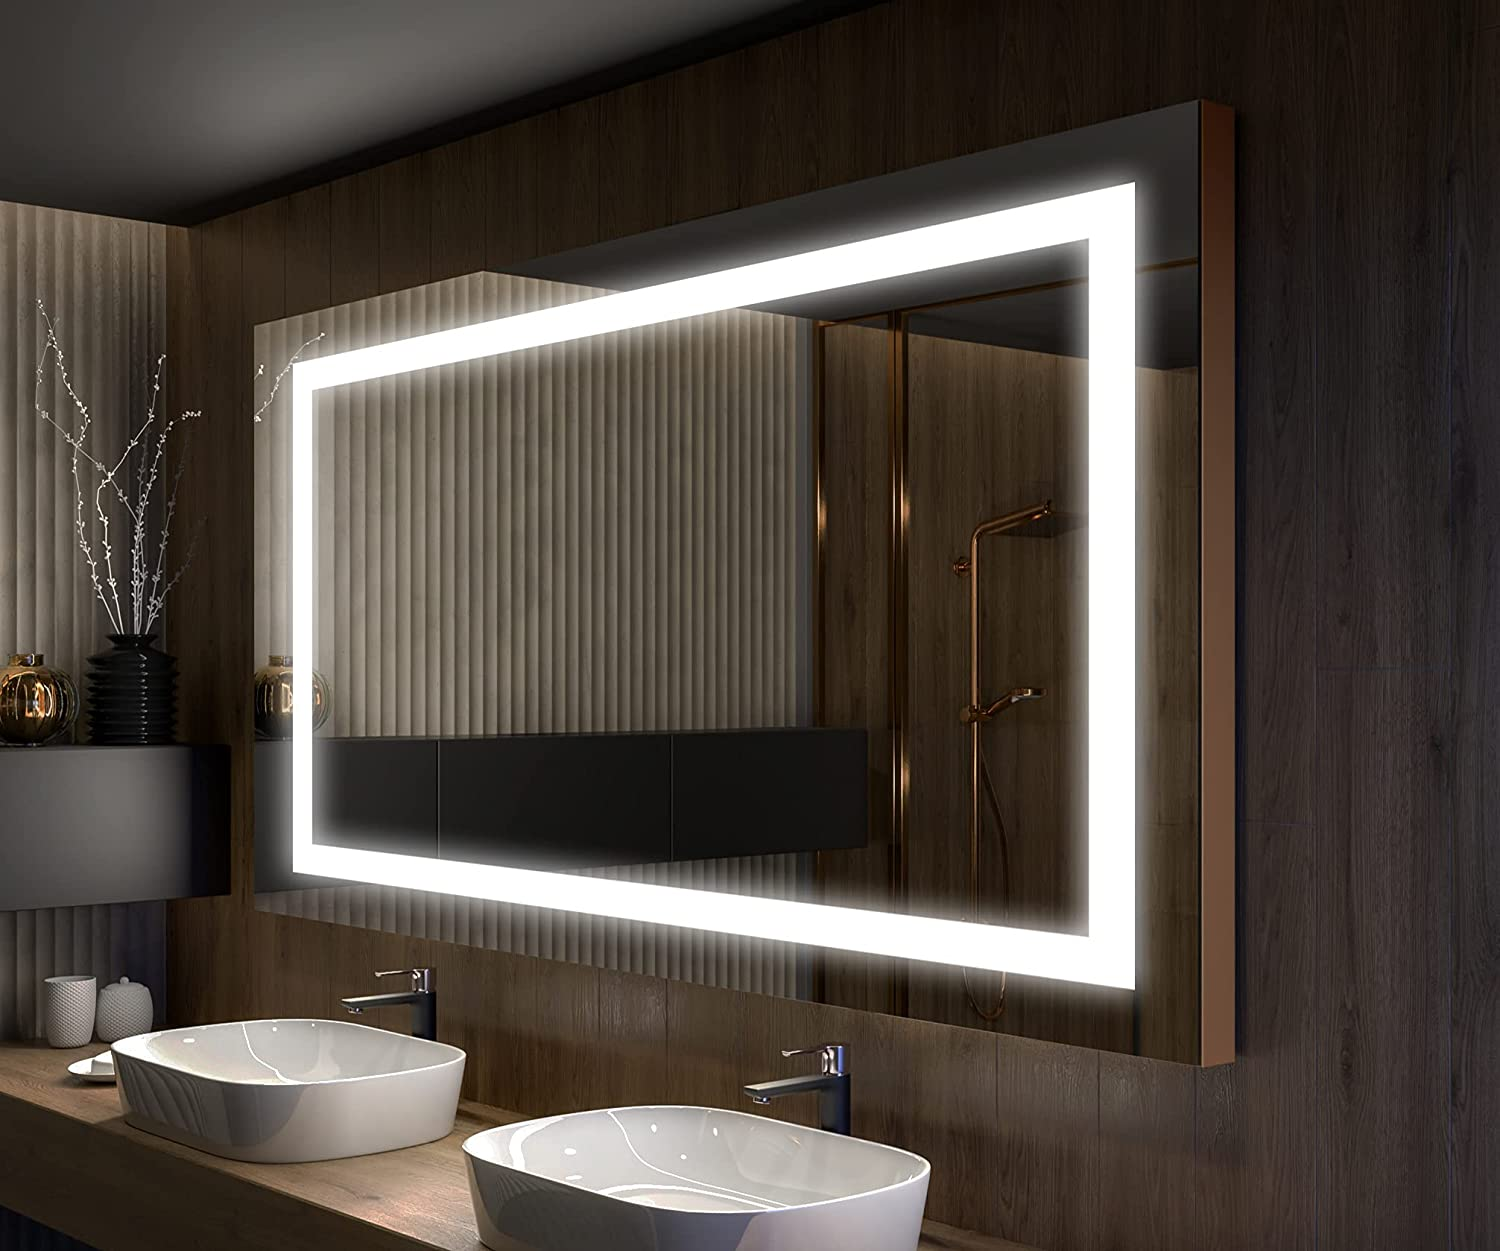 Buy Artforma Bathroom Led Lighted Mirror 60 X 32 Inch Illuminated Backlit Vanity Mirror Dimmable Leds Touch Button Anti Fog Led Clock Fully Customizable L15 Online In Taiwan B087c48lm7